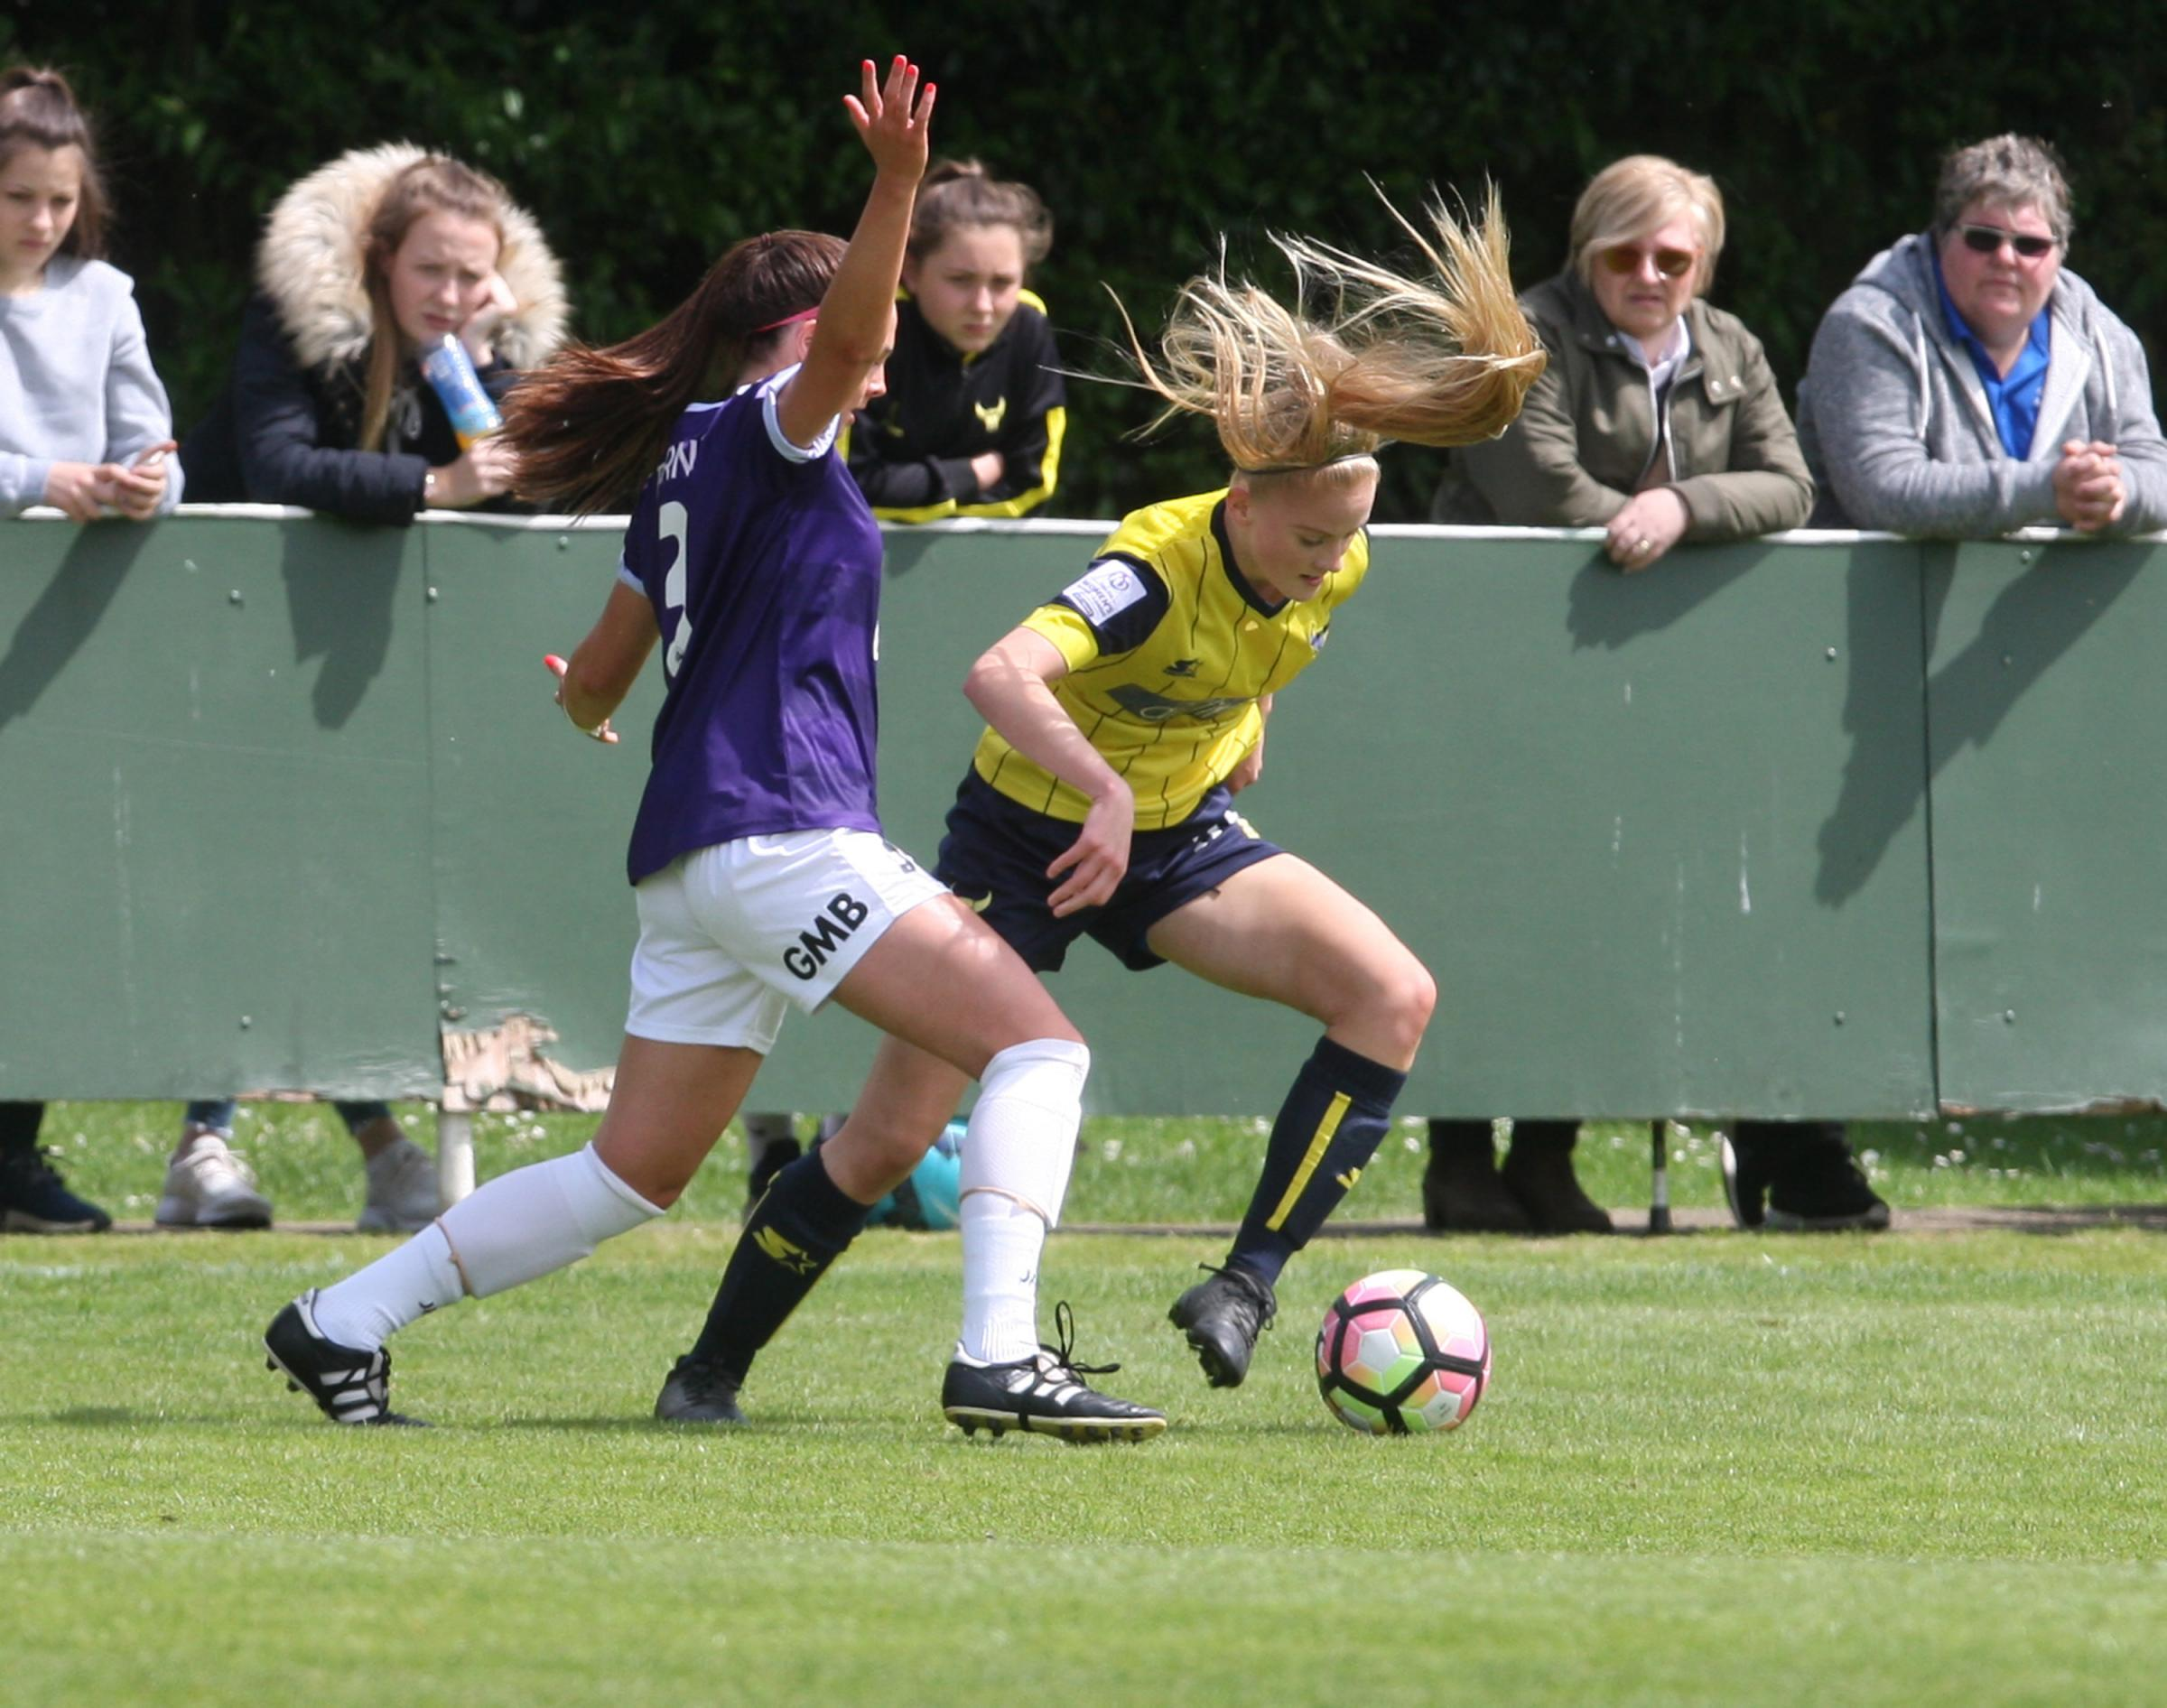 Evie Gane gave Oxford United the lead during their 2-1 defeat to Blackburn Rovers in the SSE Women's FA Cup